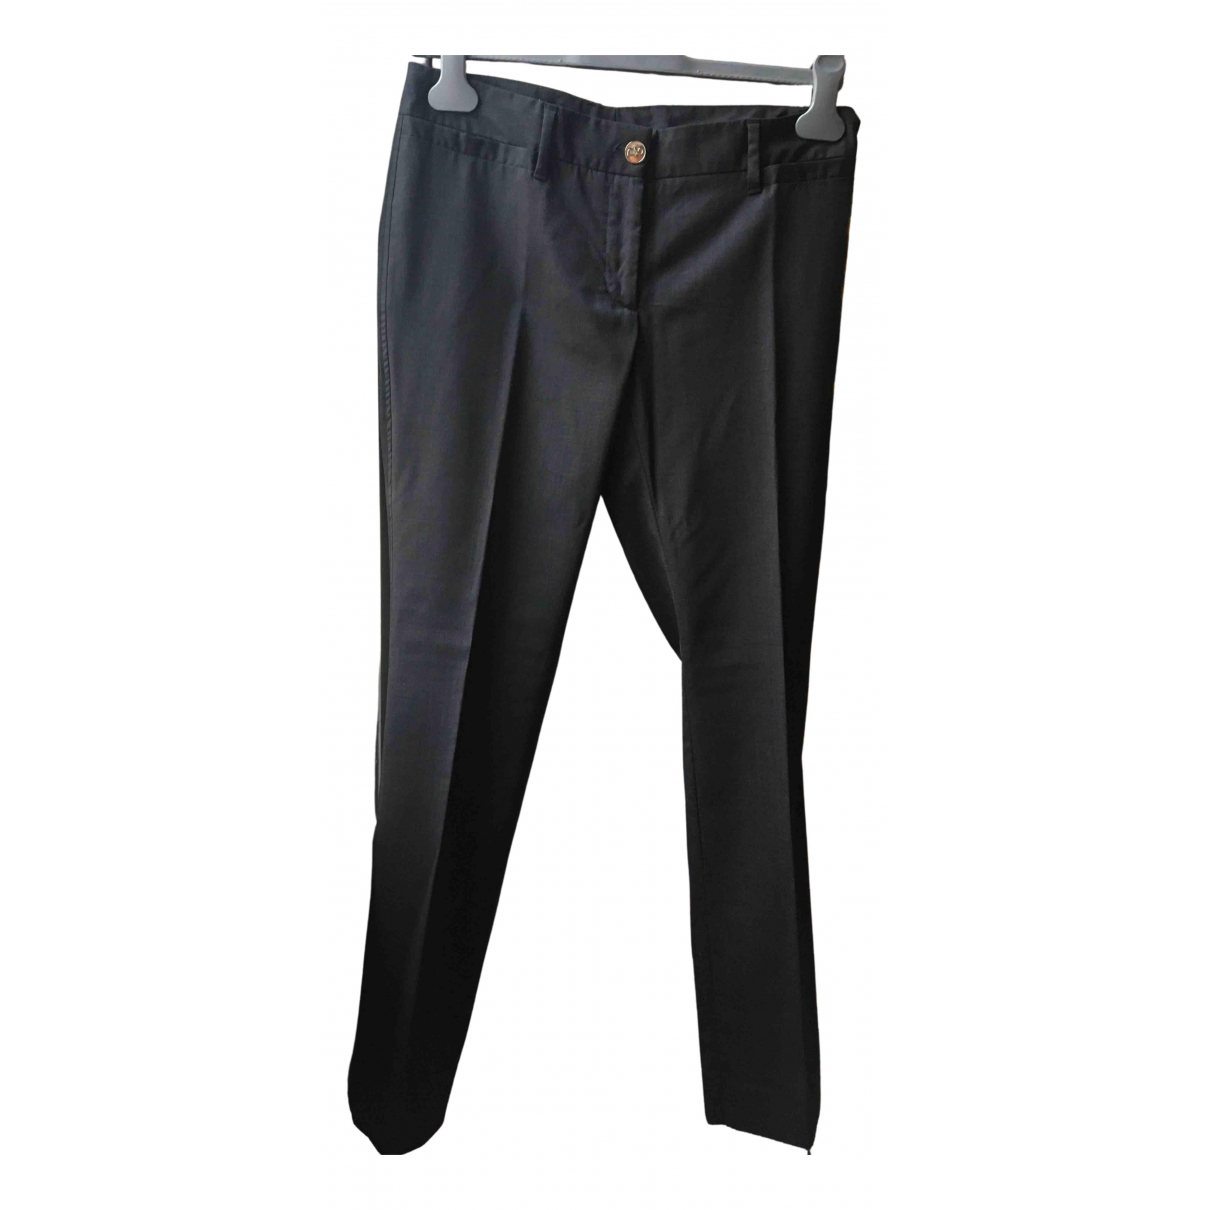 Dolce & Gabbana N Anthracite Wool Trousers for Women 42 IT